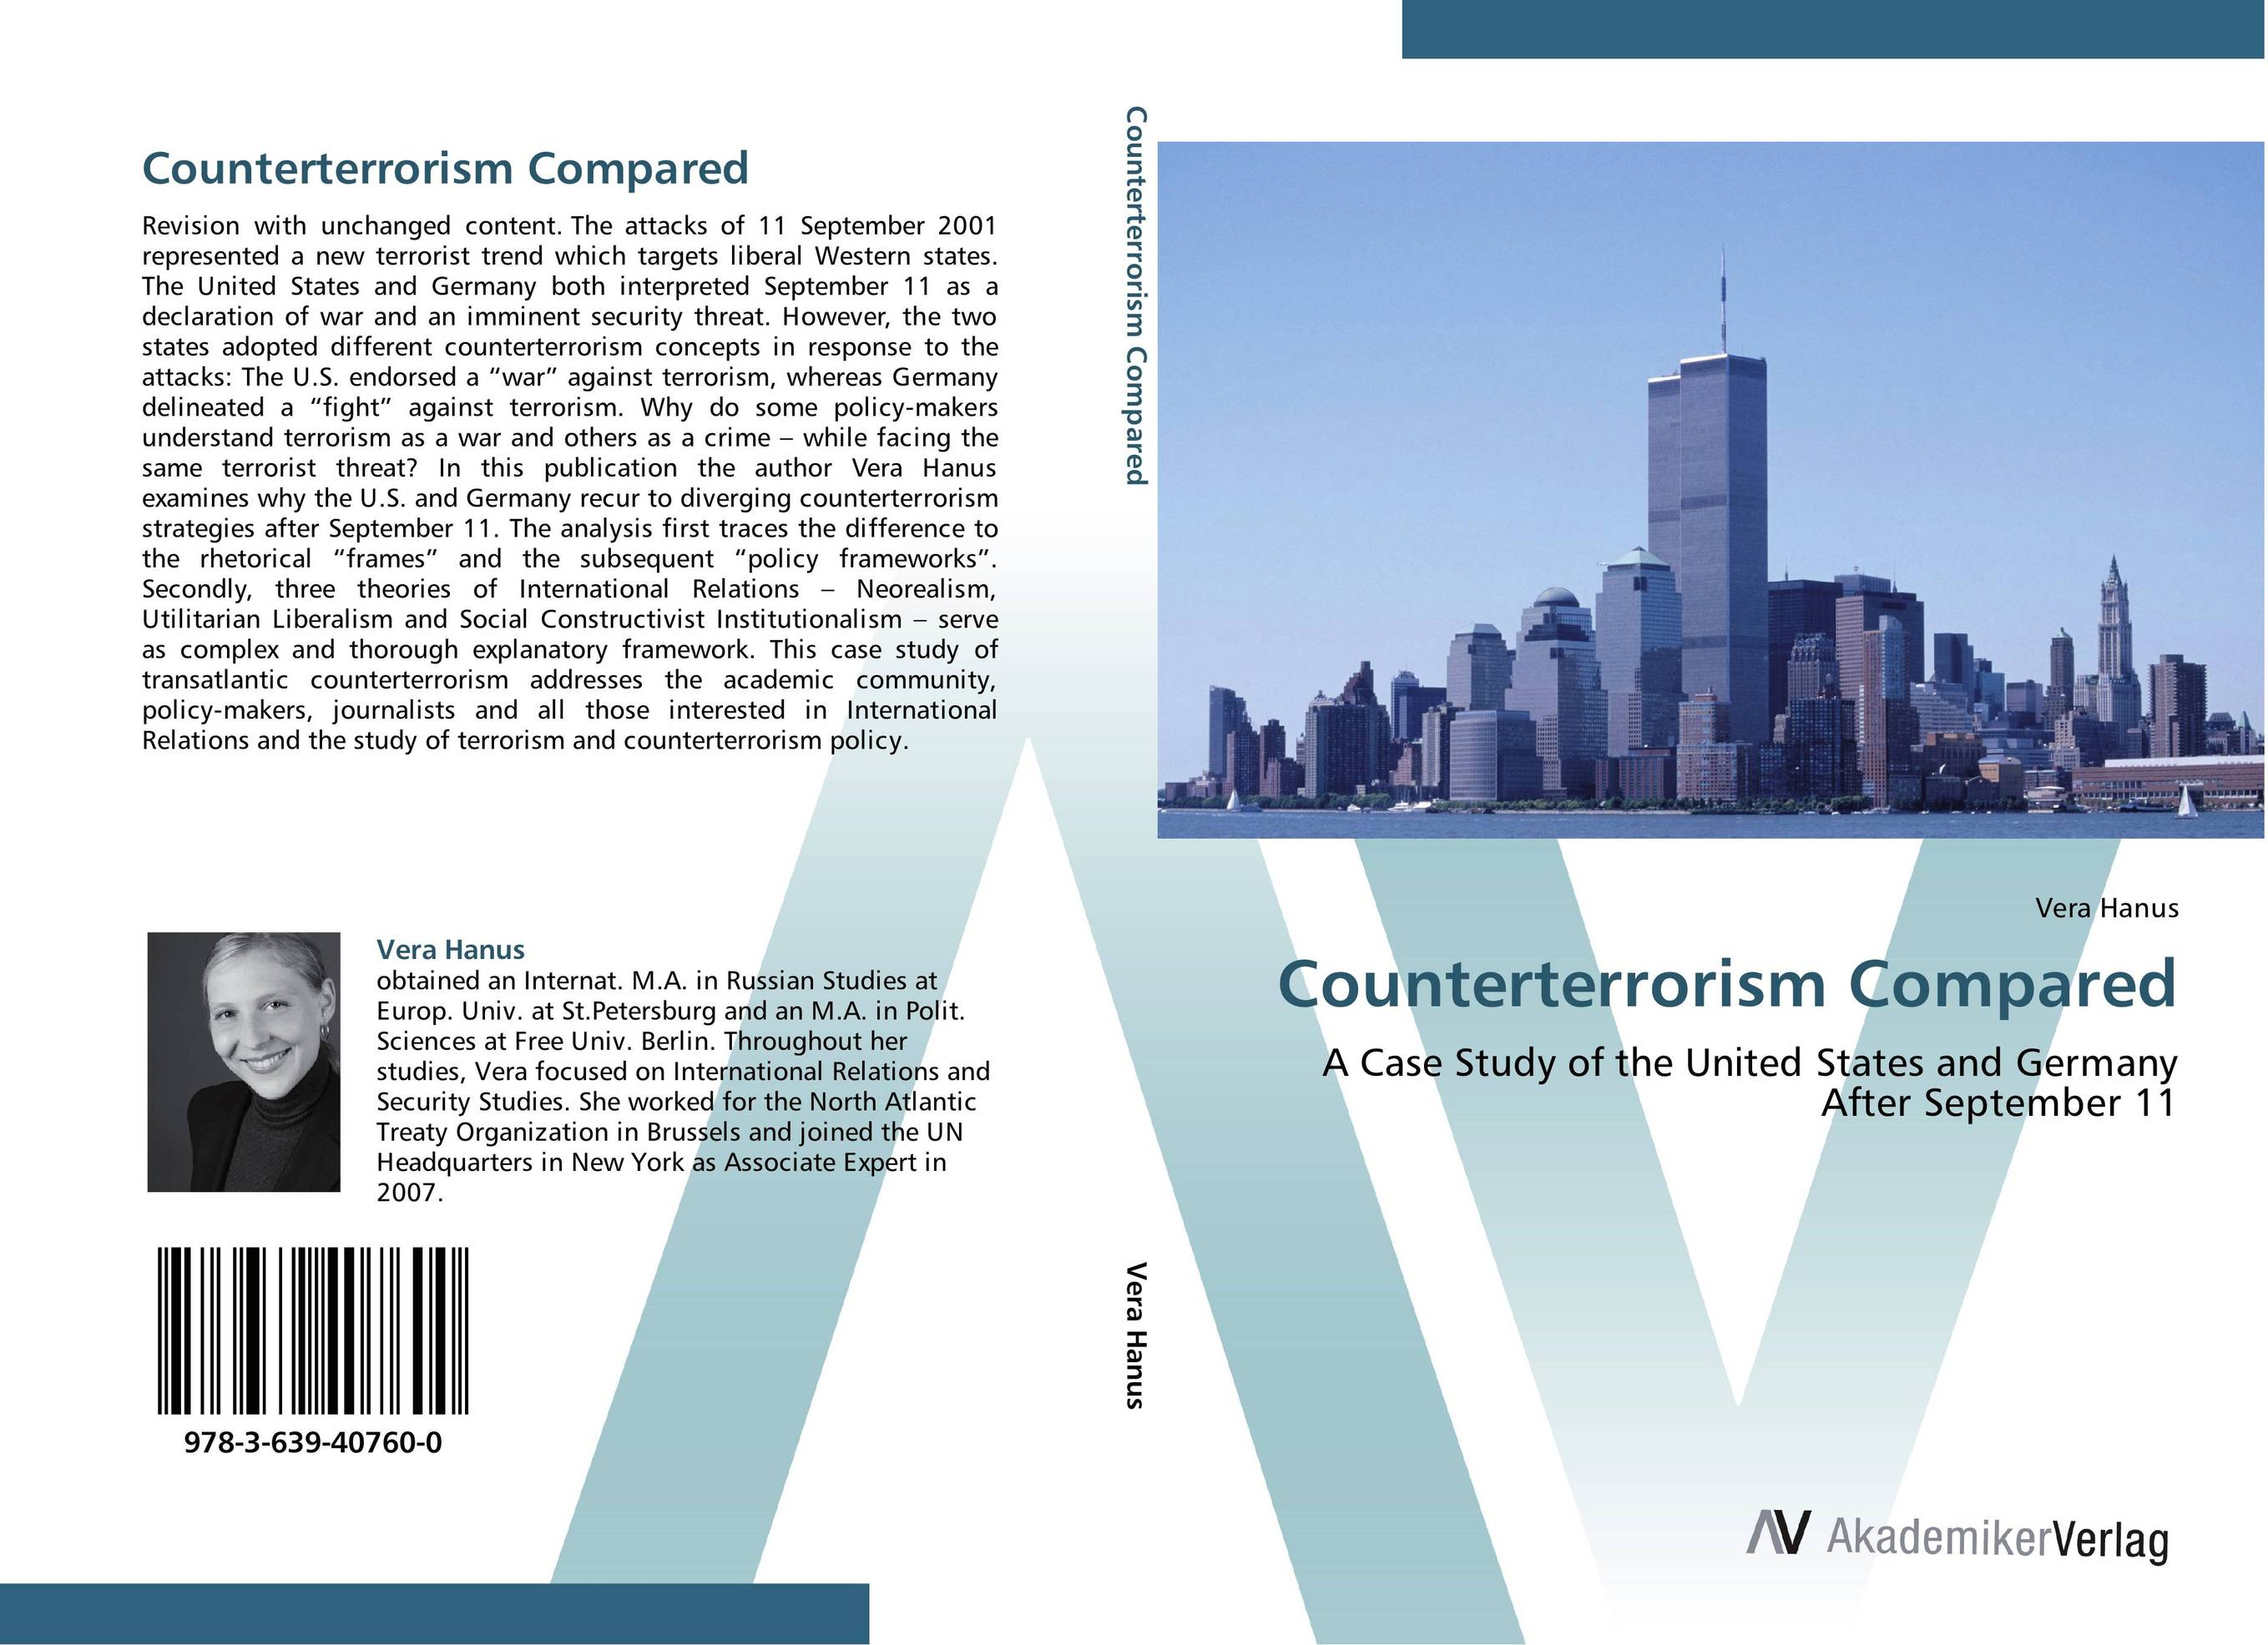 Counterterrorism Compared point systems migration policy and international students flow